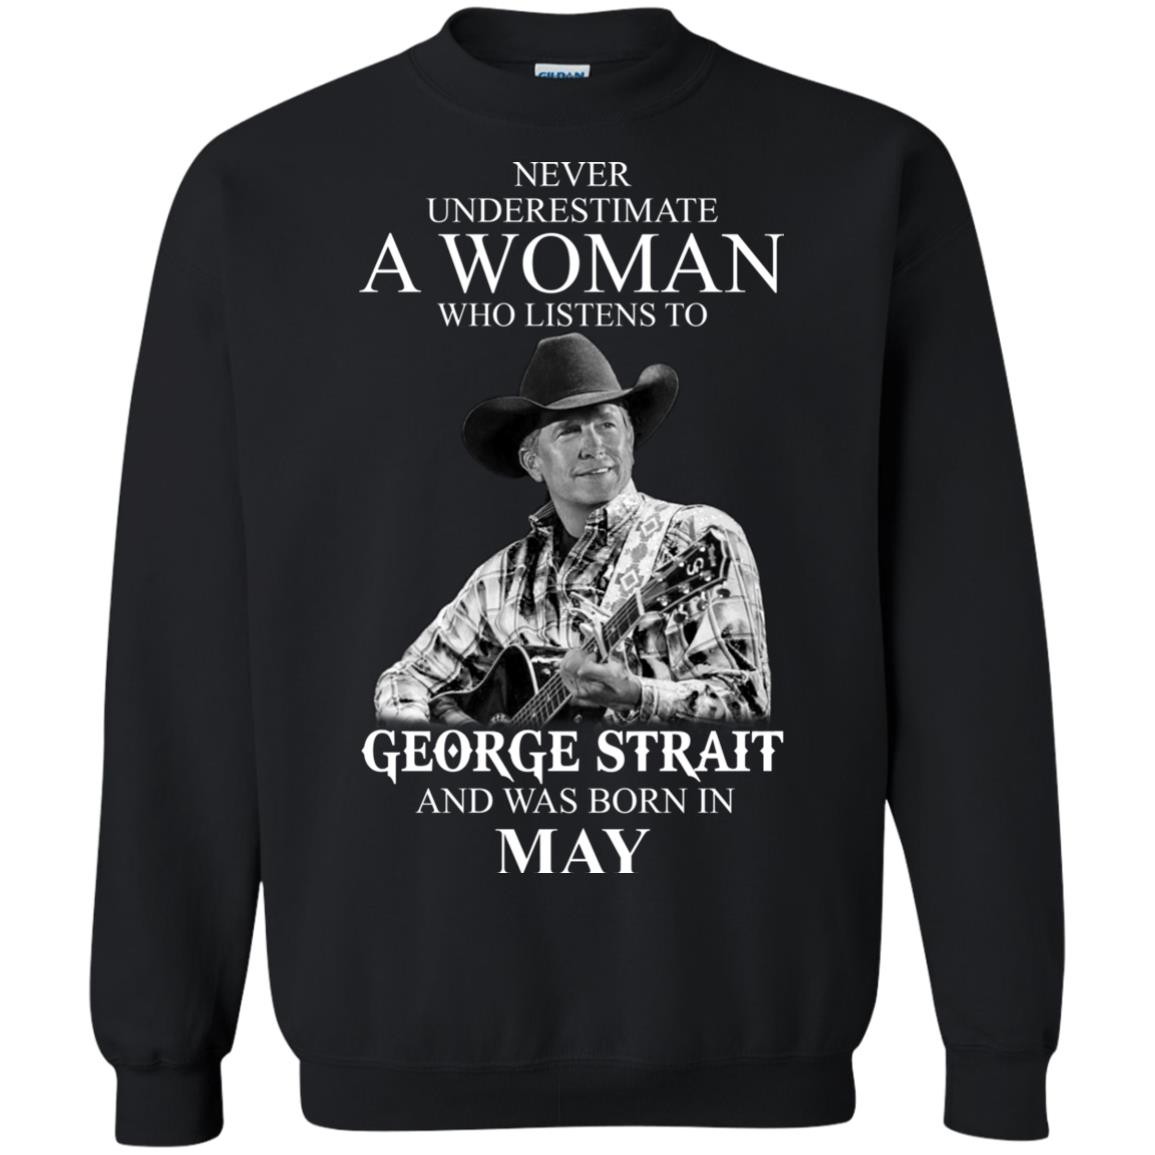 image 416 - Never Underestimate A Woman Who Listens To George Strait And Was Born In May shirt